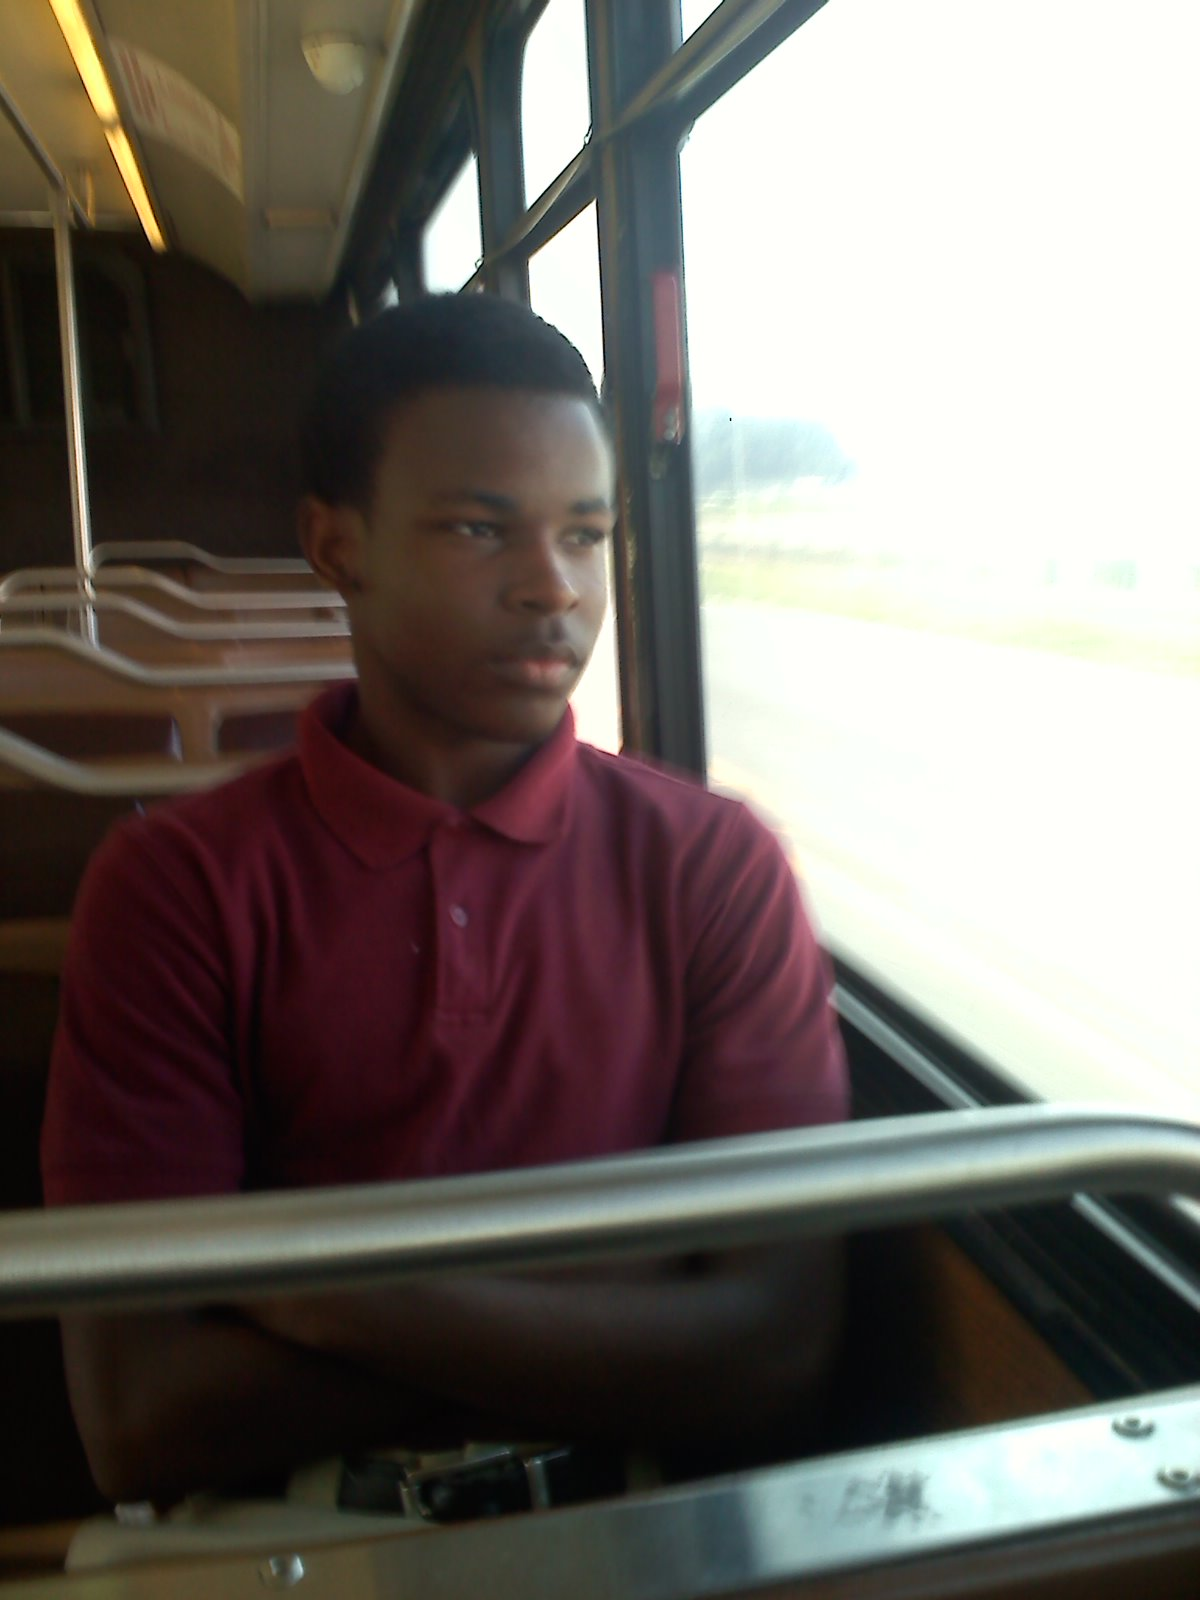 Caption: Kyriakus Matthews rides the bus home after school every day. , Credit: Tegan Wendland